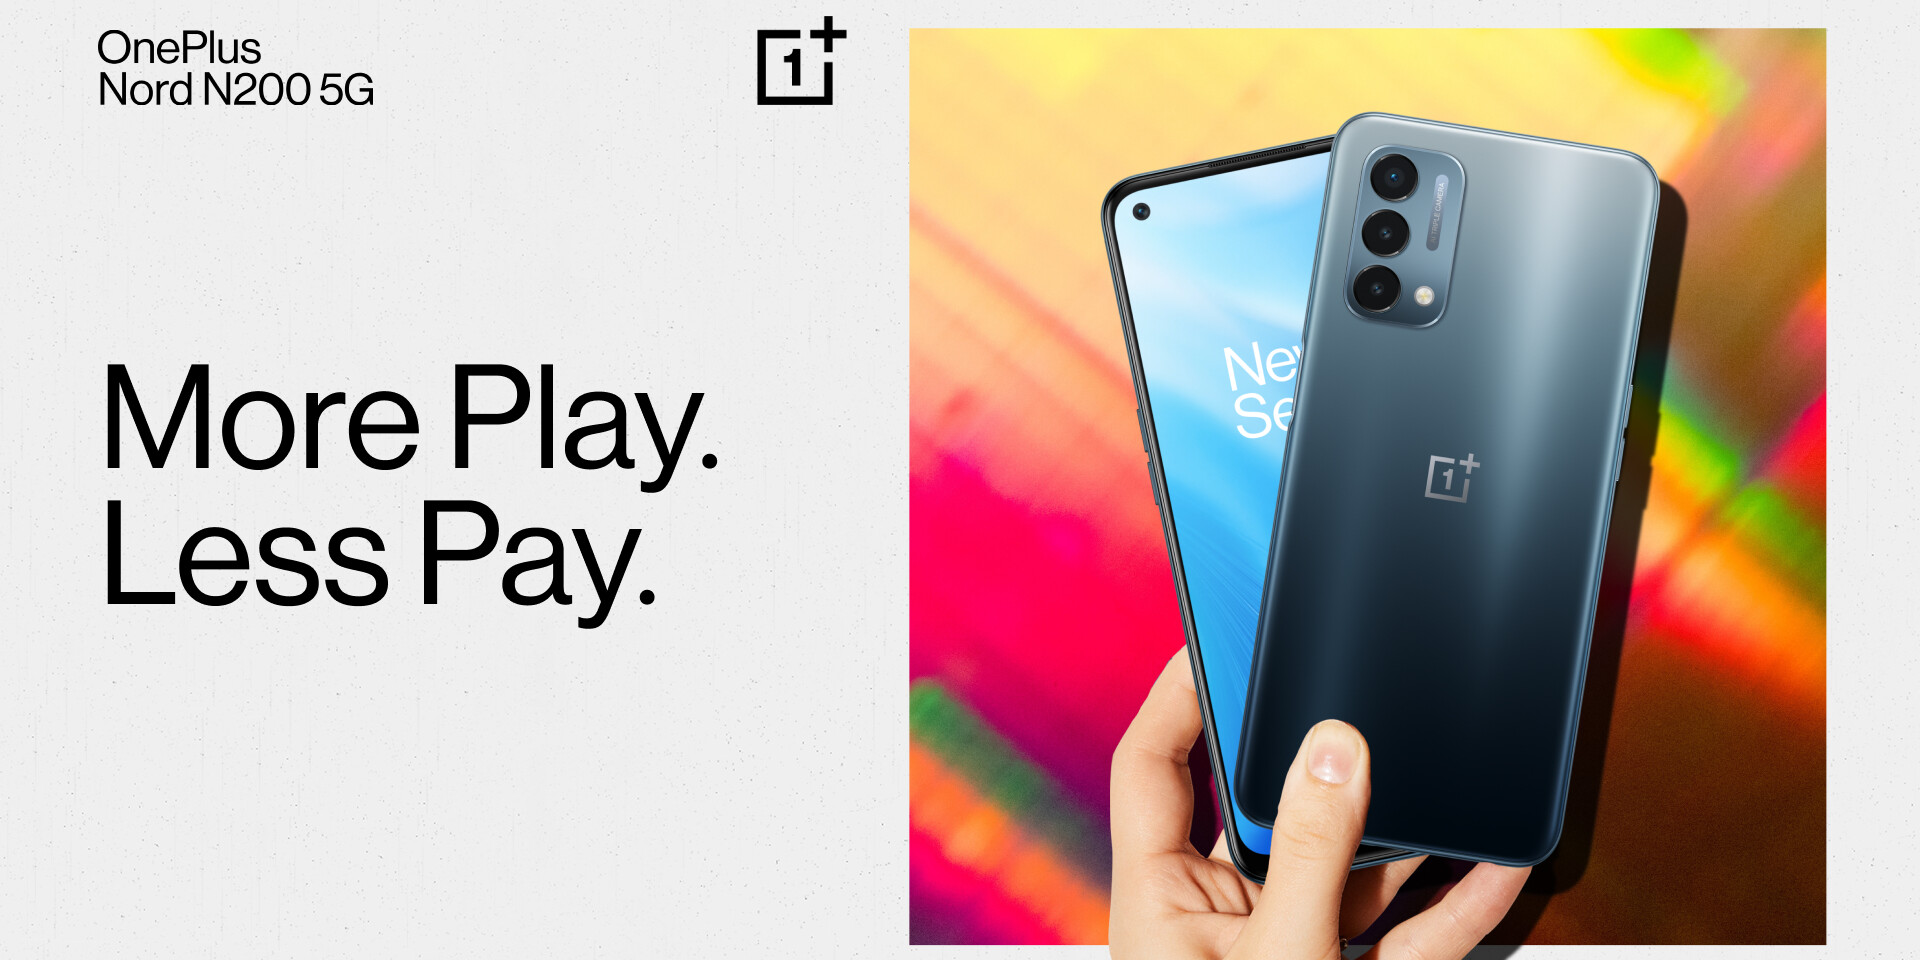 OnePlus Nord N200 5G Introduced in North America